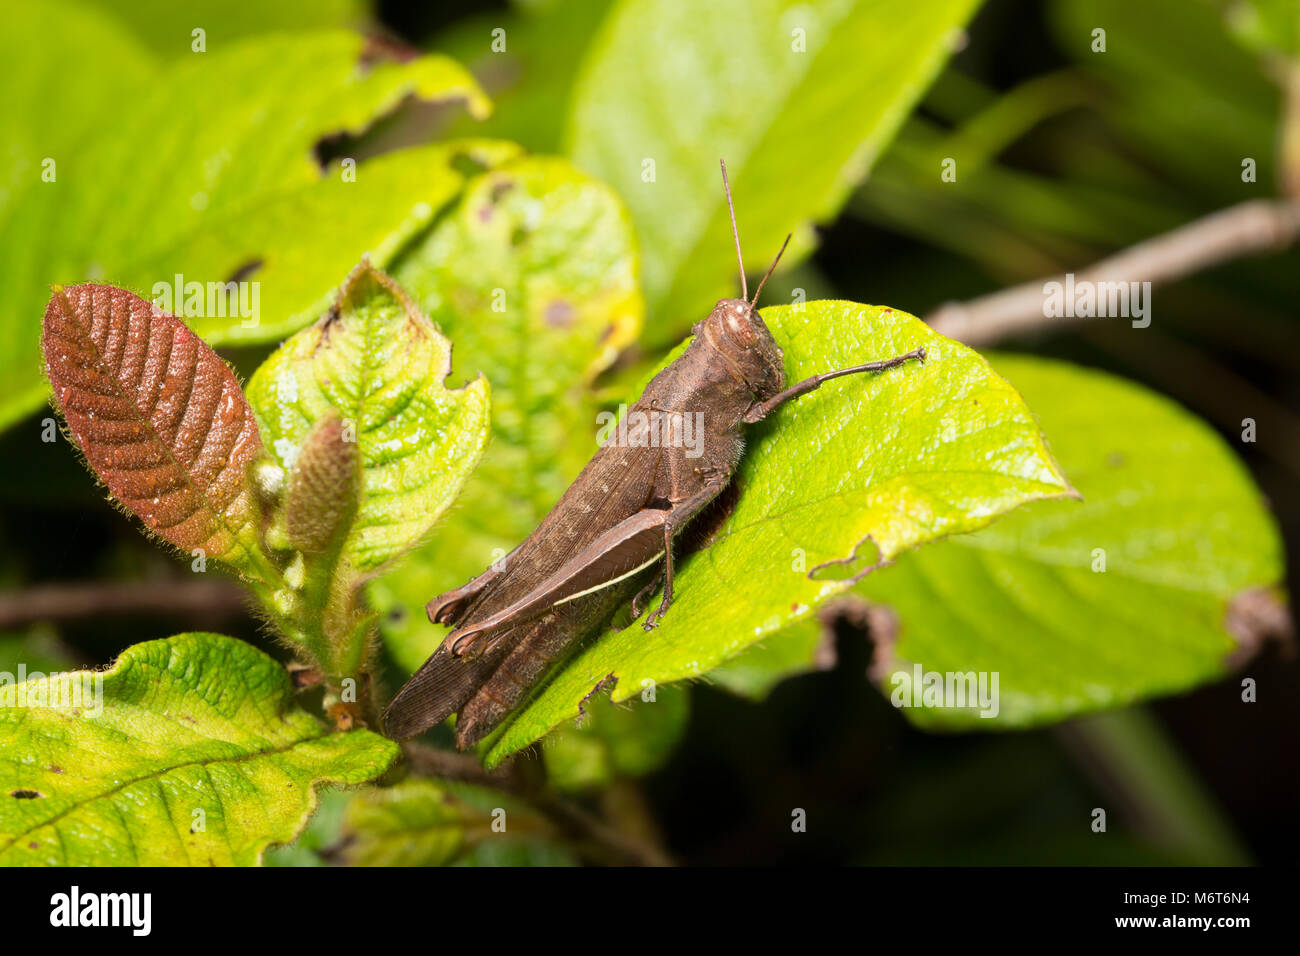 Grasshopper photographed at Botapassie, Suriname, South America - Stock Image